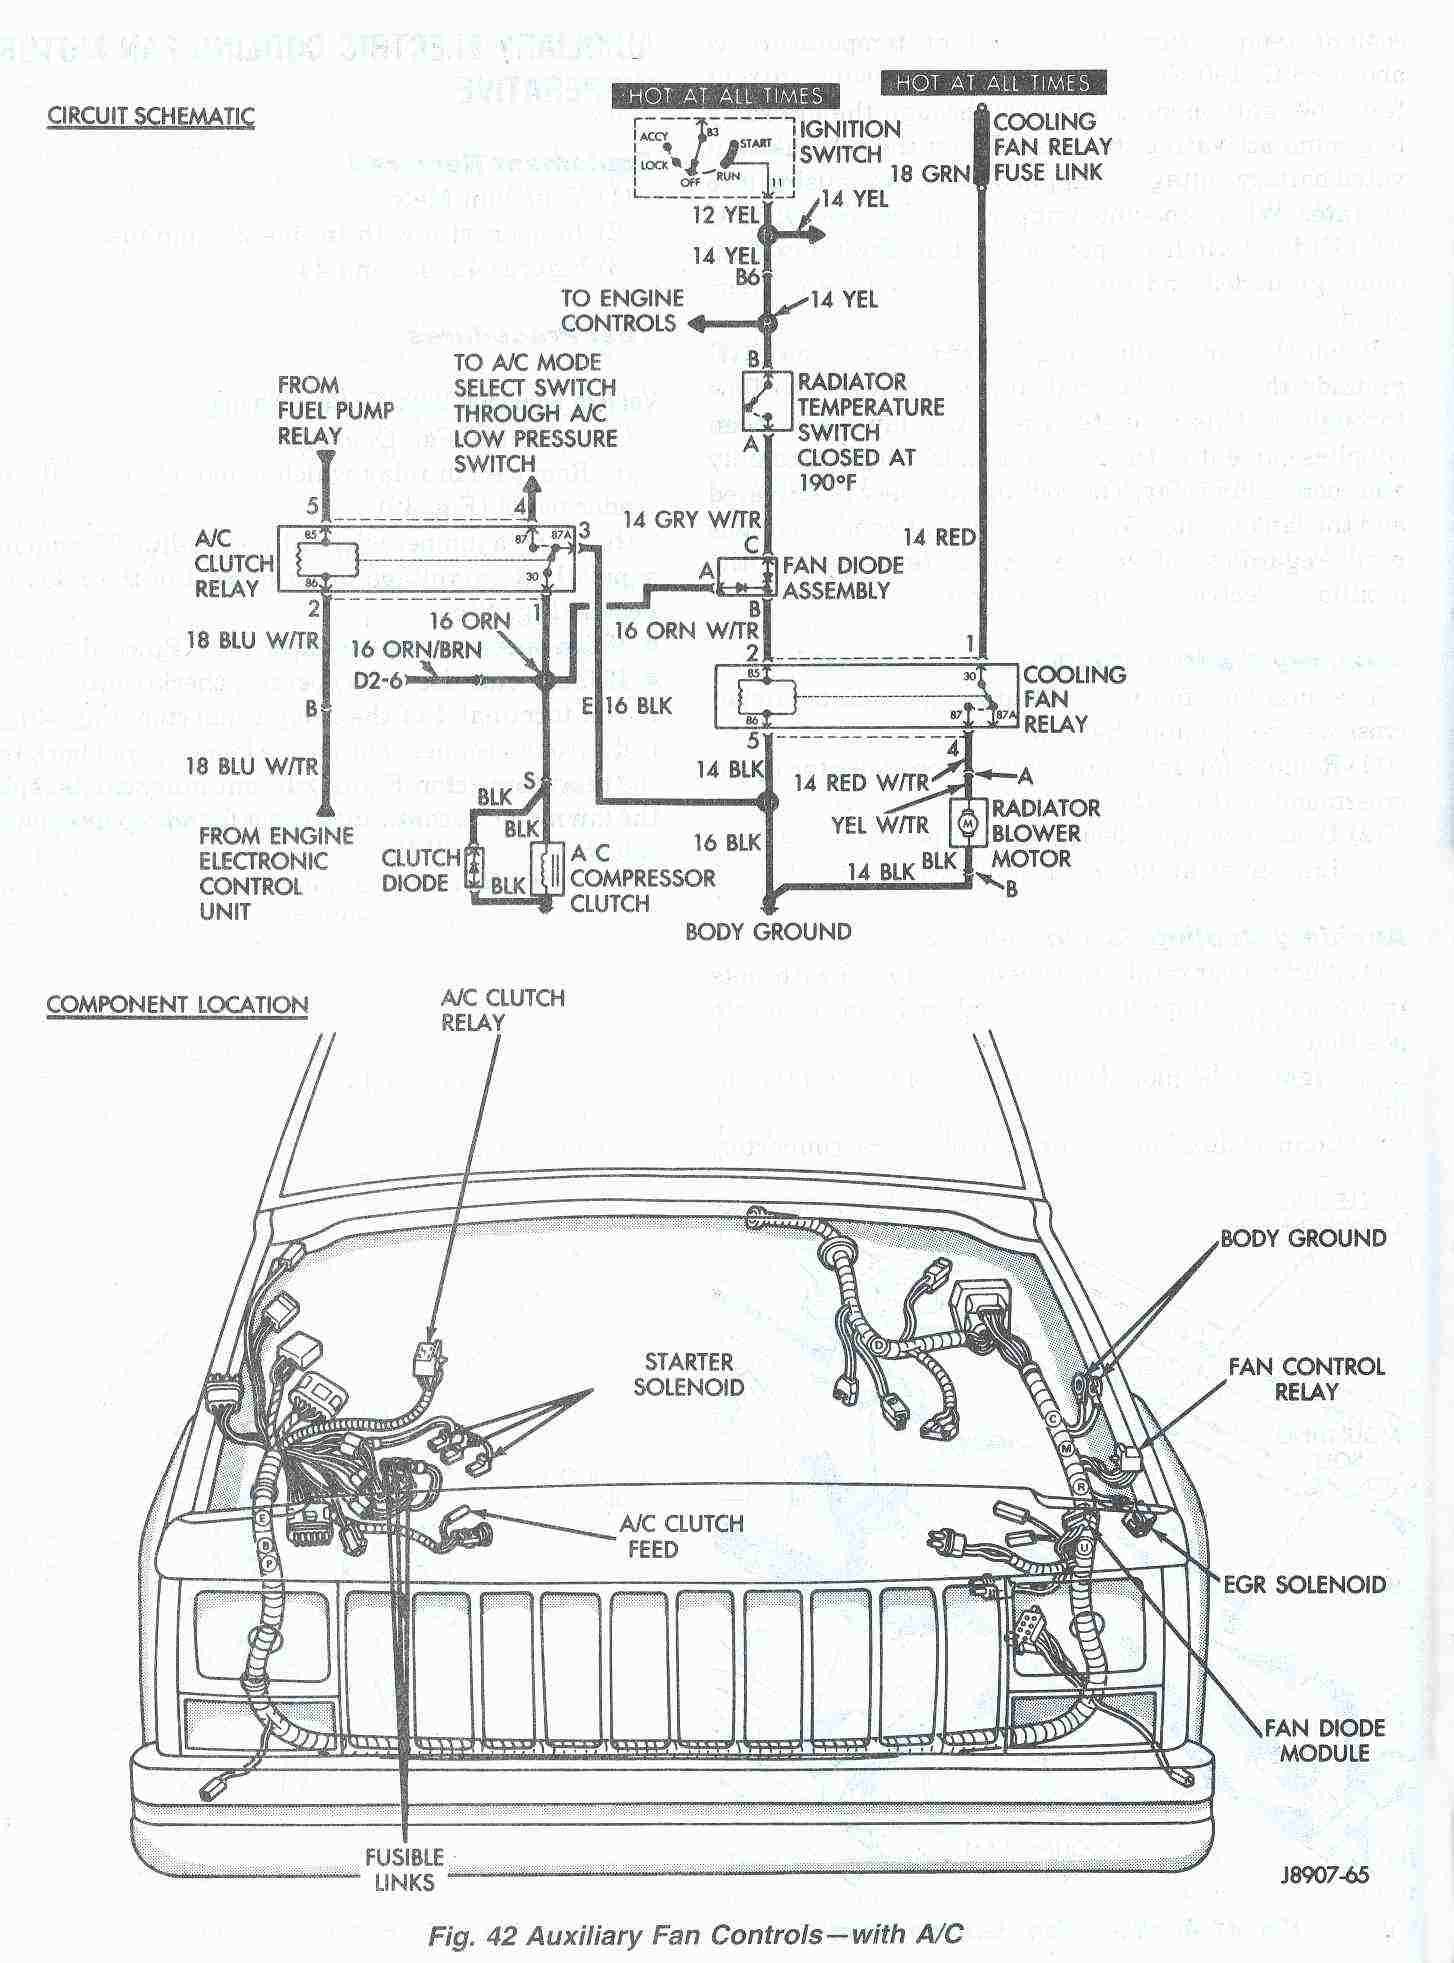 e8c83109bad6c41d377df8c1cb7a8dc4 auxiliary_fan_schematic_fig_42 jpg (1454�1963) cherokee diagrams 2006 jeep wrangler ac wiring diagram at bakdesigns.co